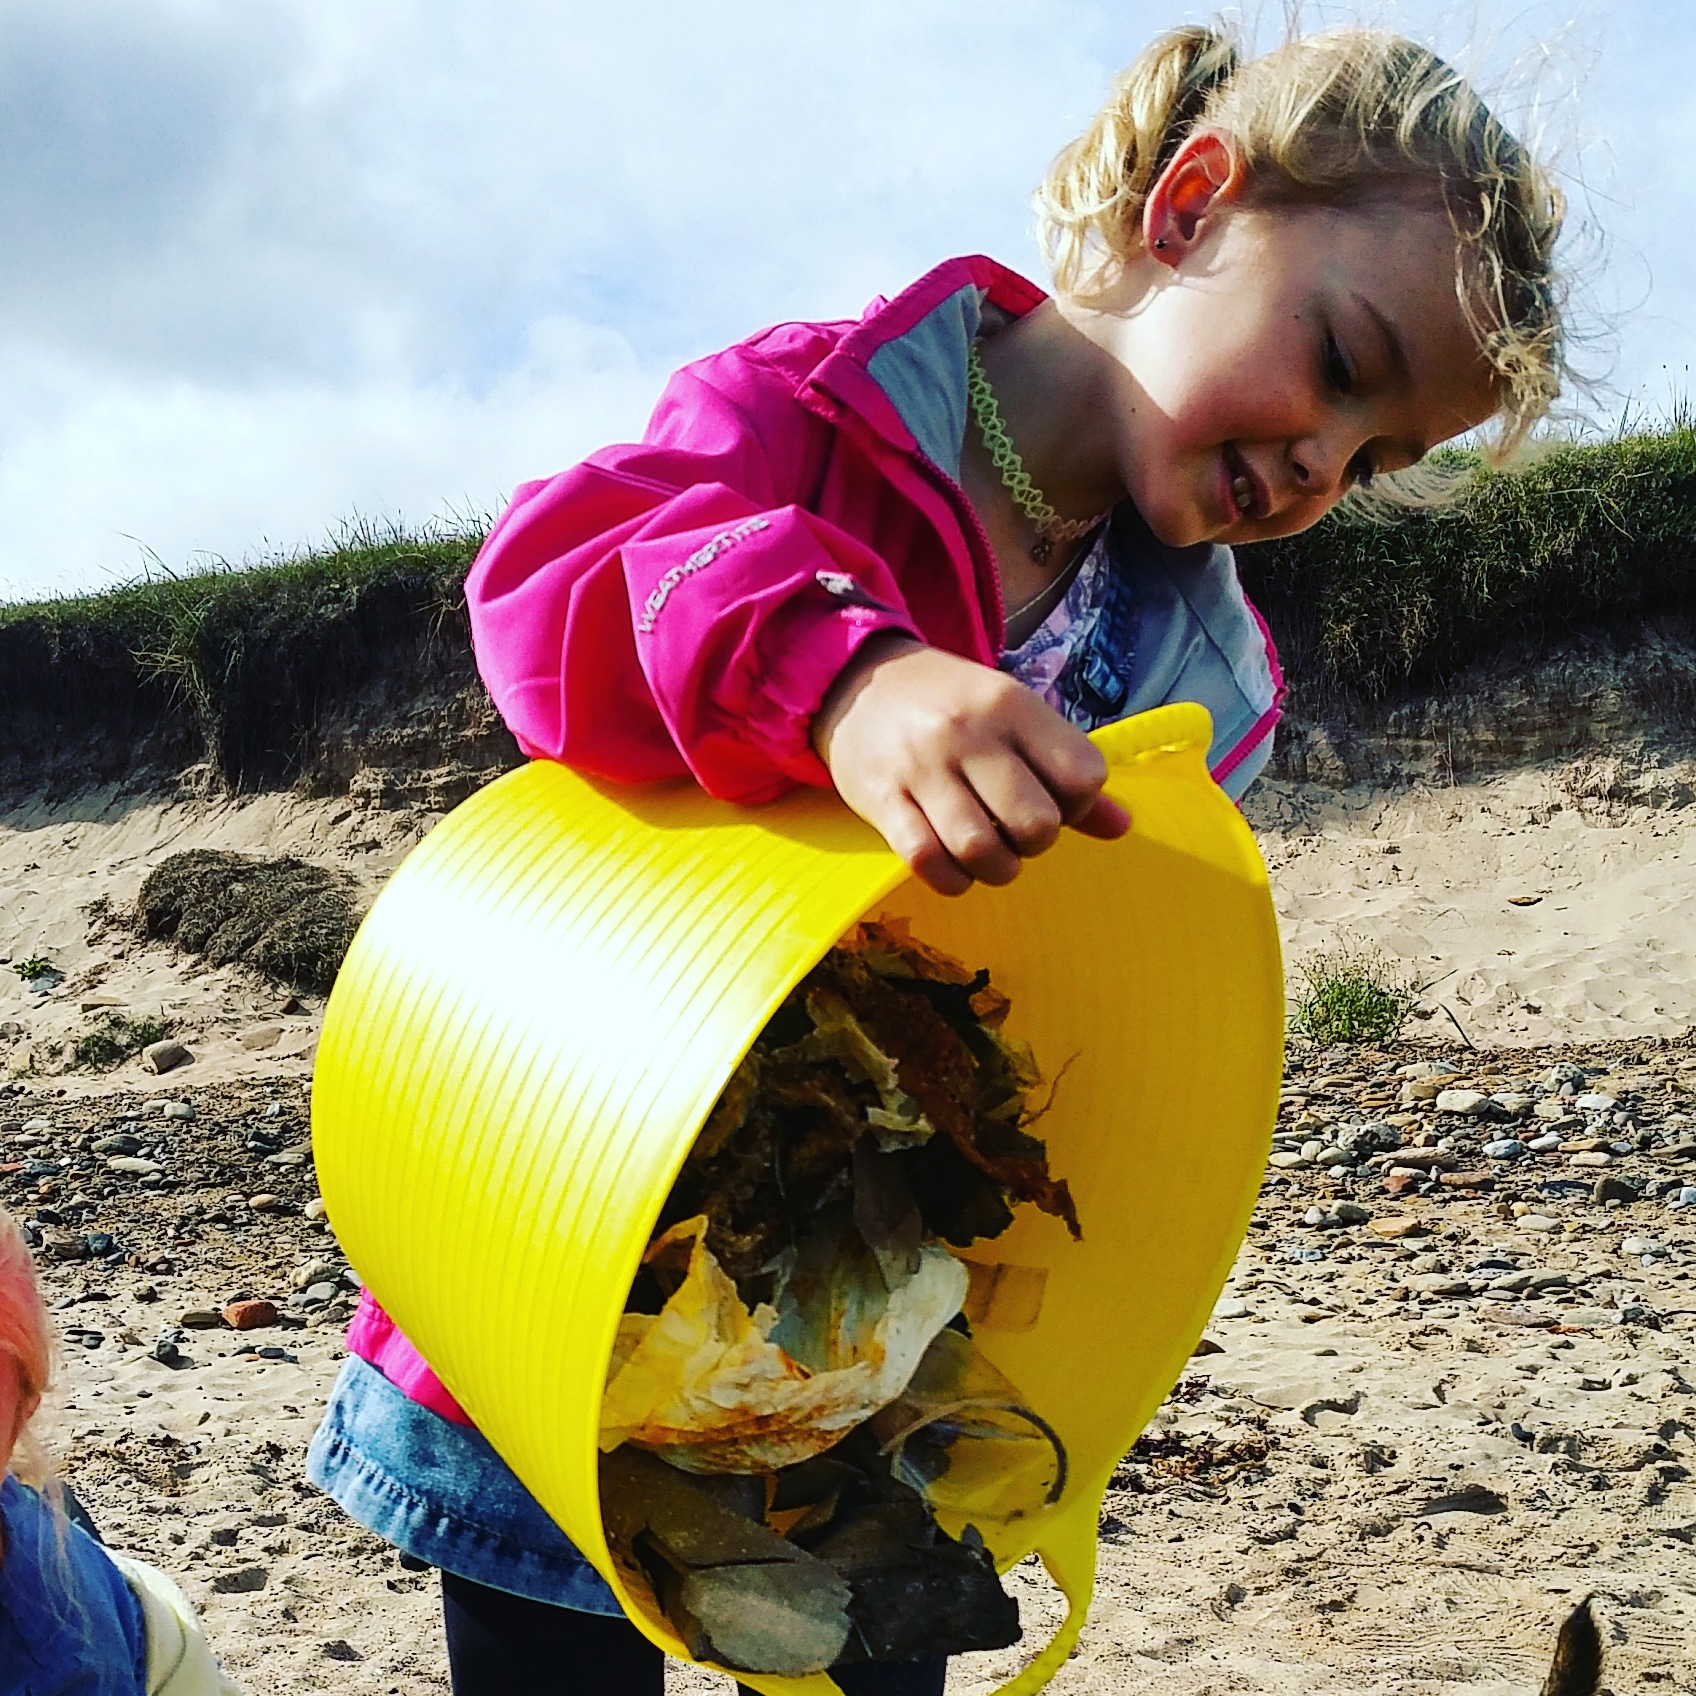 Starting them young - beach cleans are great for kids!